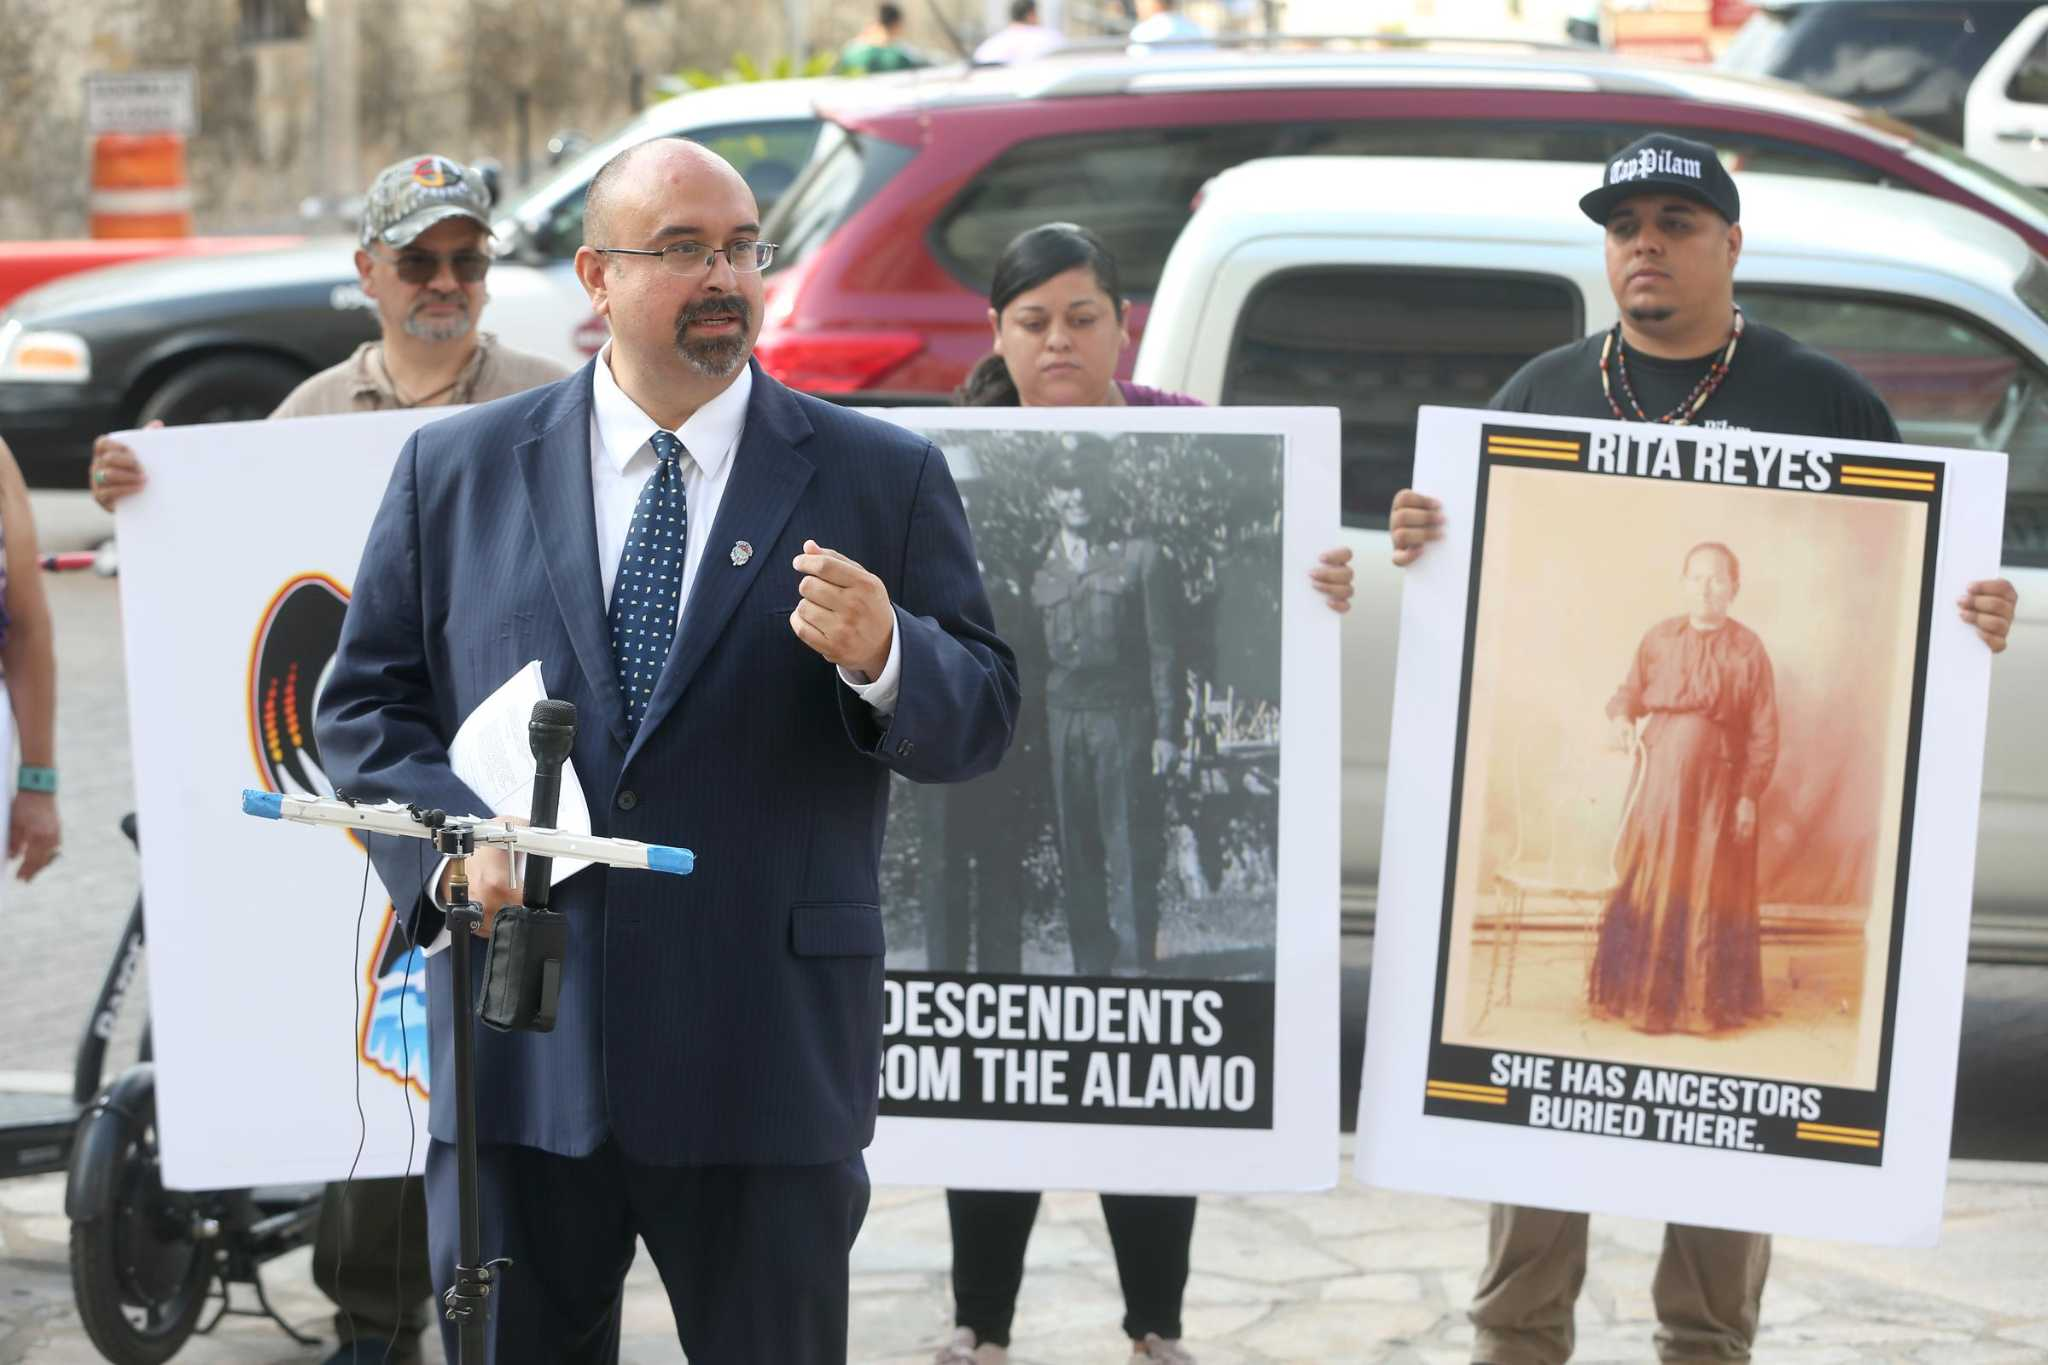 Lawsuit over Alamo burial grounds reflects wider ferment